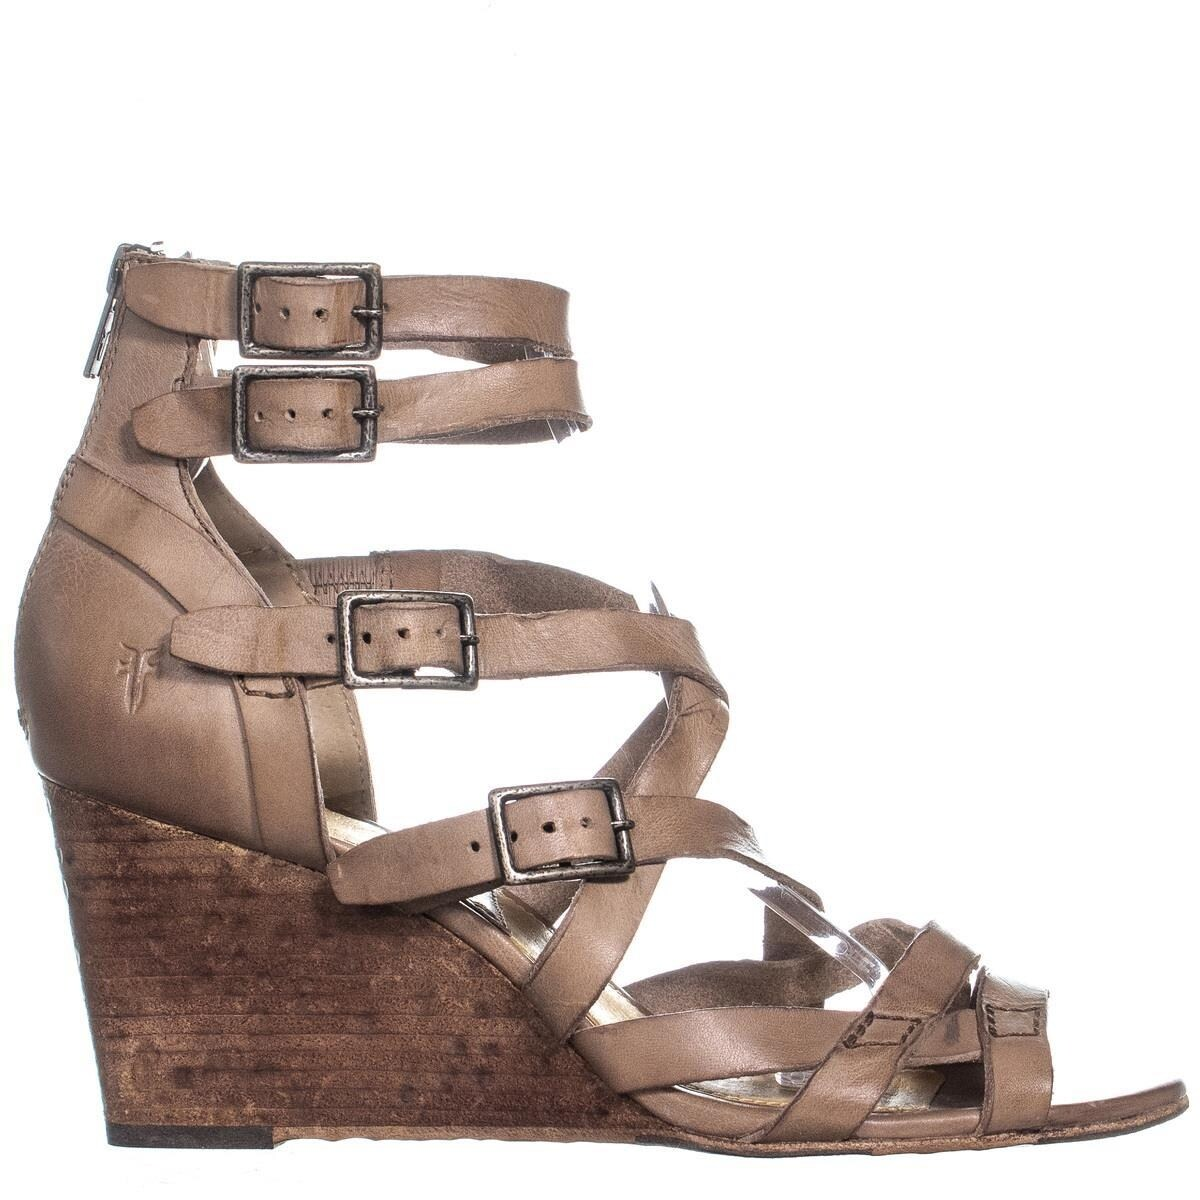 8557412adfcc4 Shop FRYE Rain Strappy Wedge Gladiator Sandals